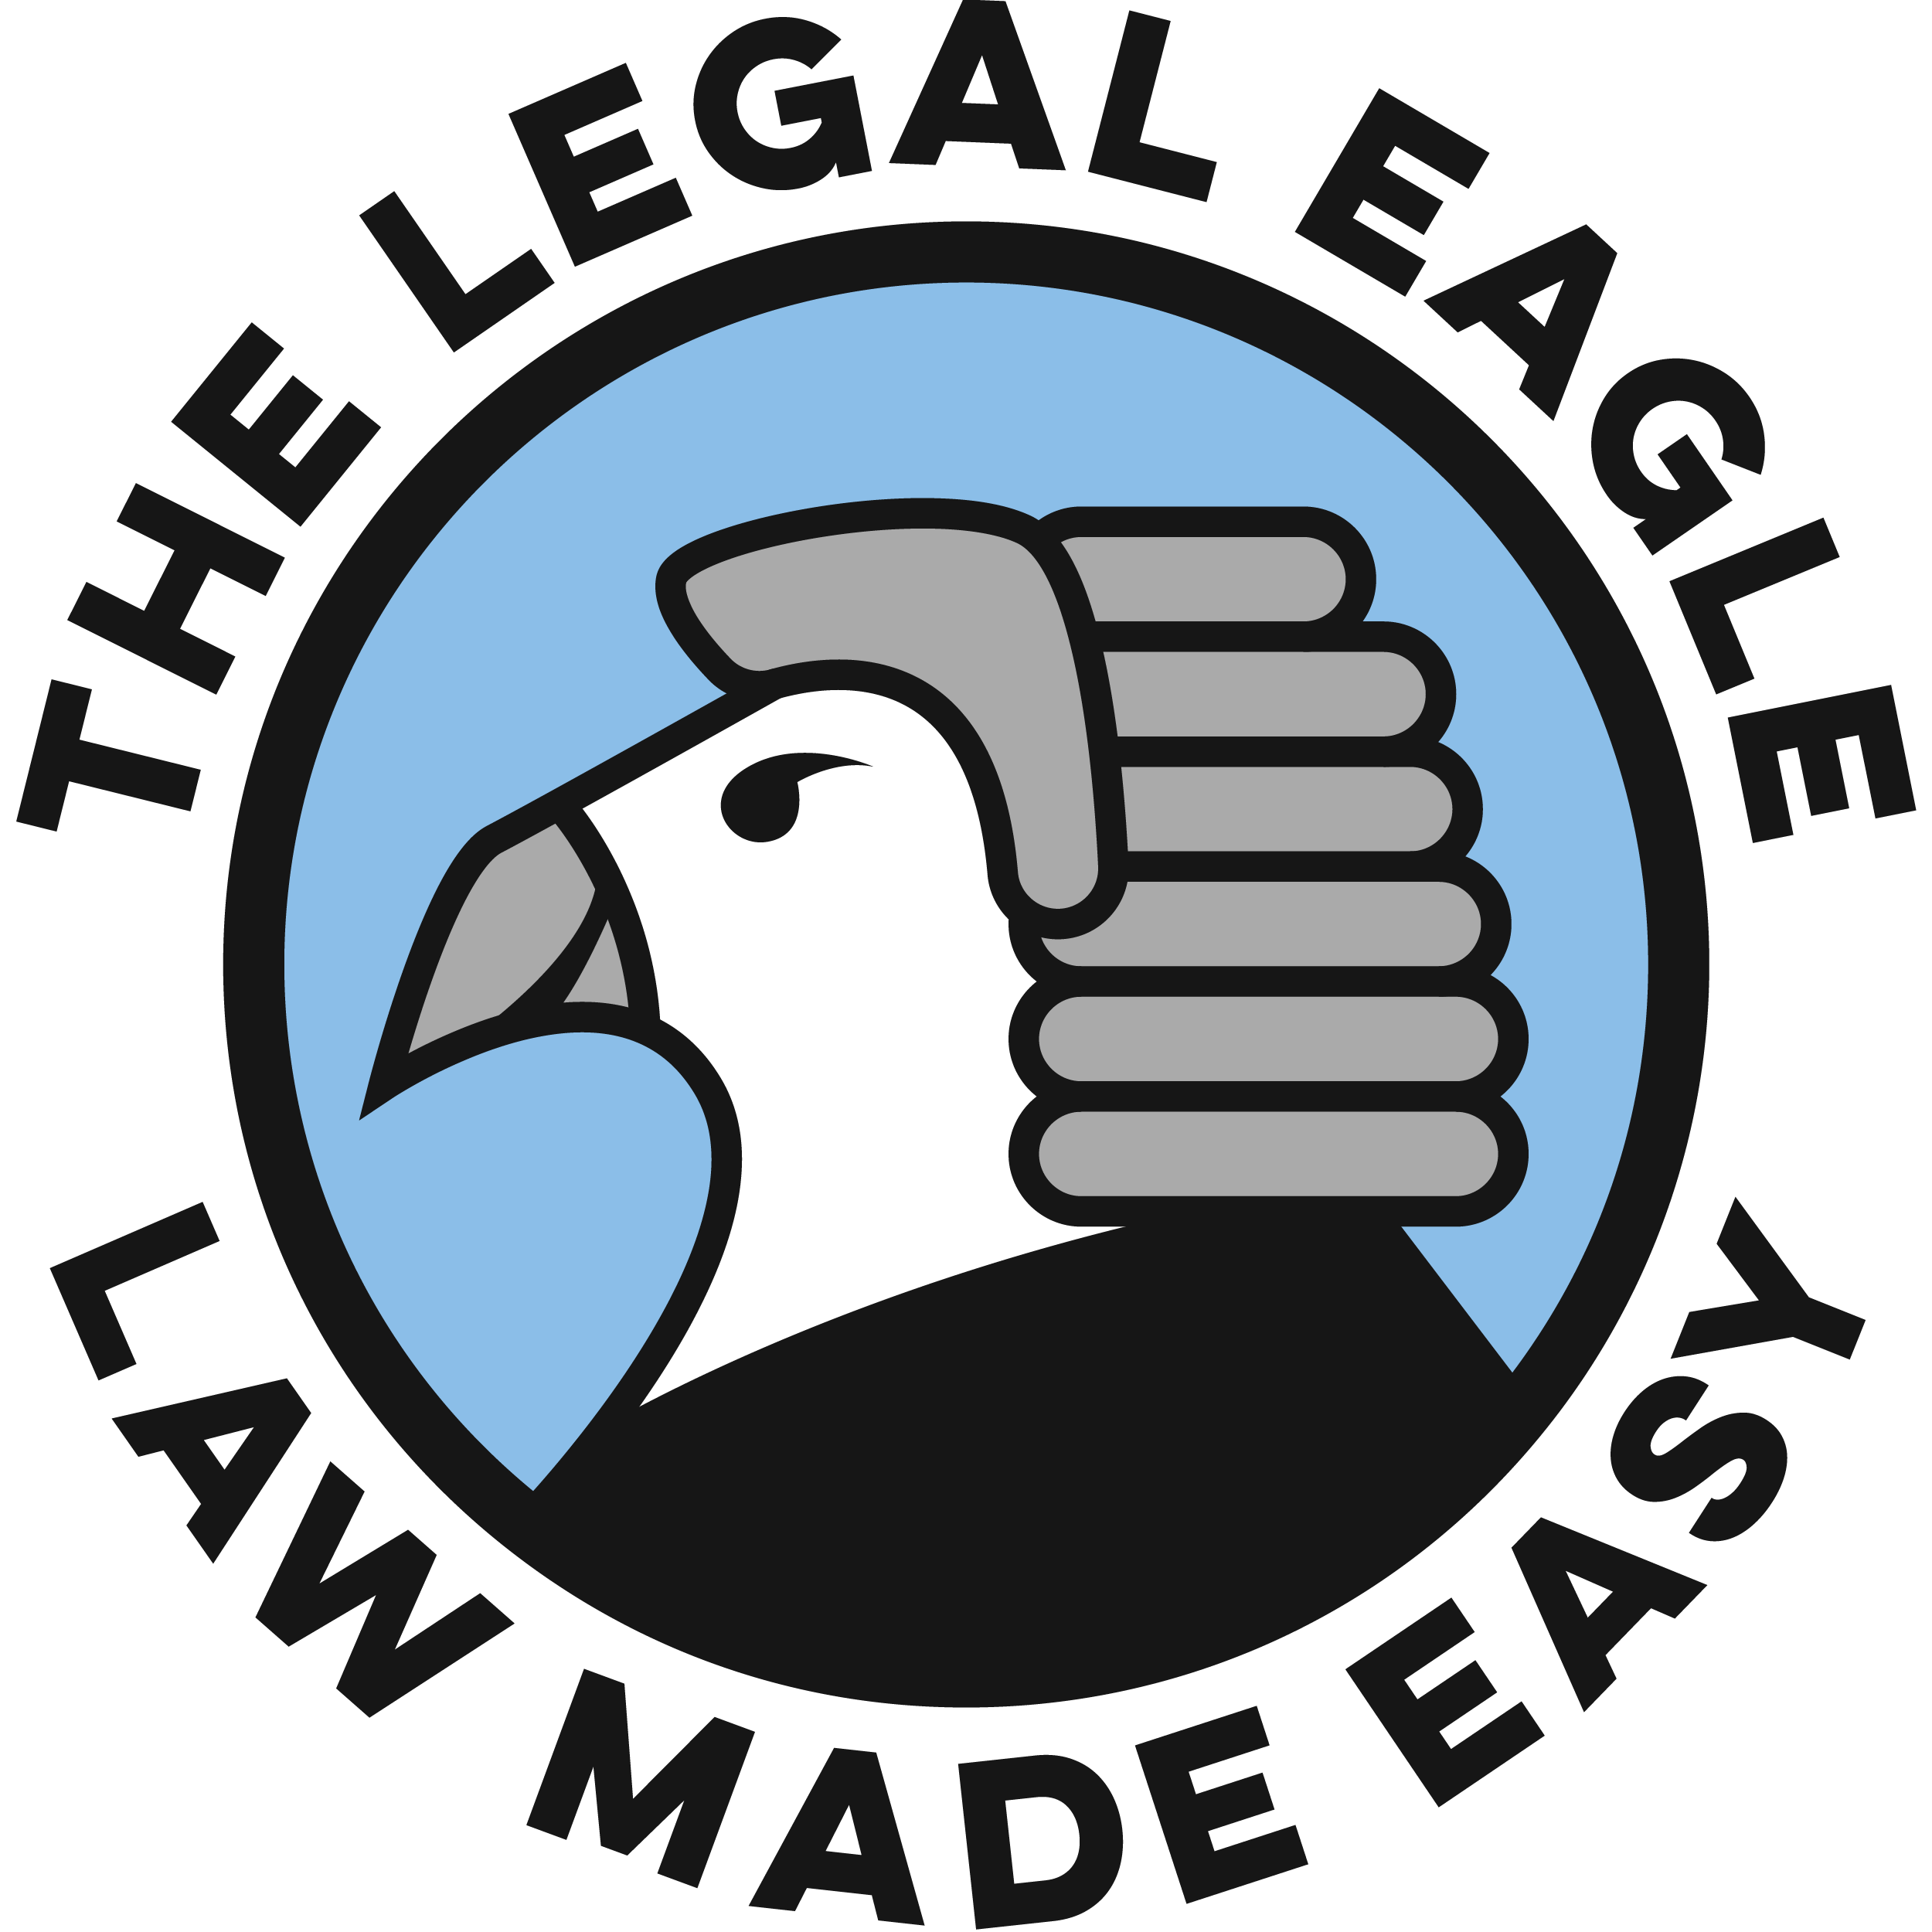 THE LEGAL EAGLE - LAW MADE EASY